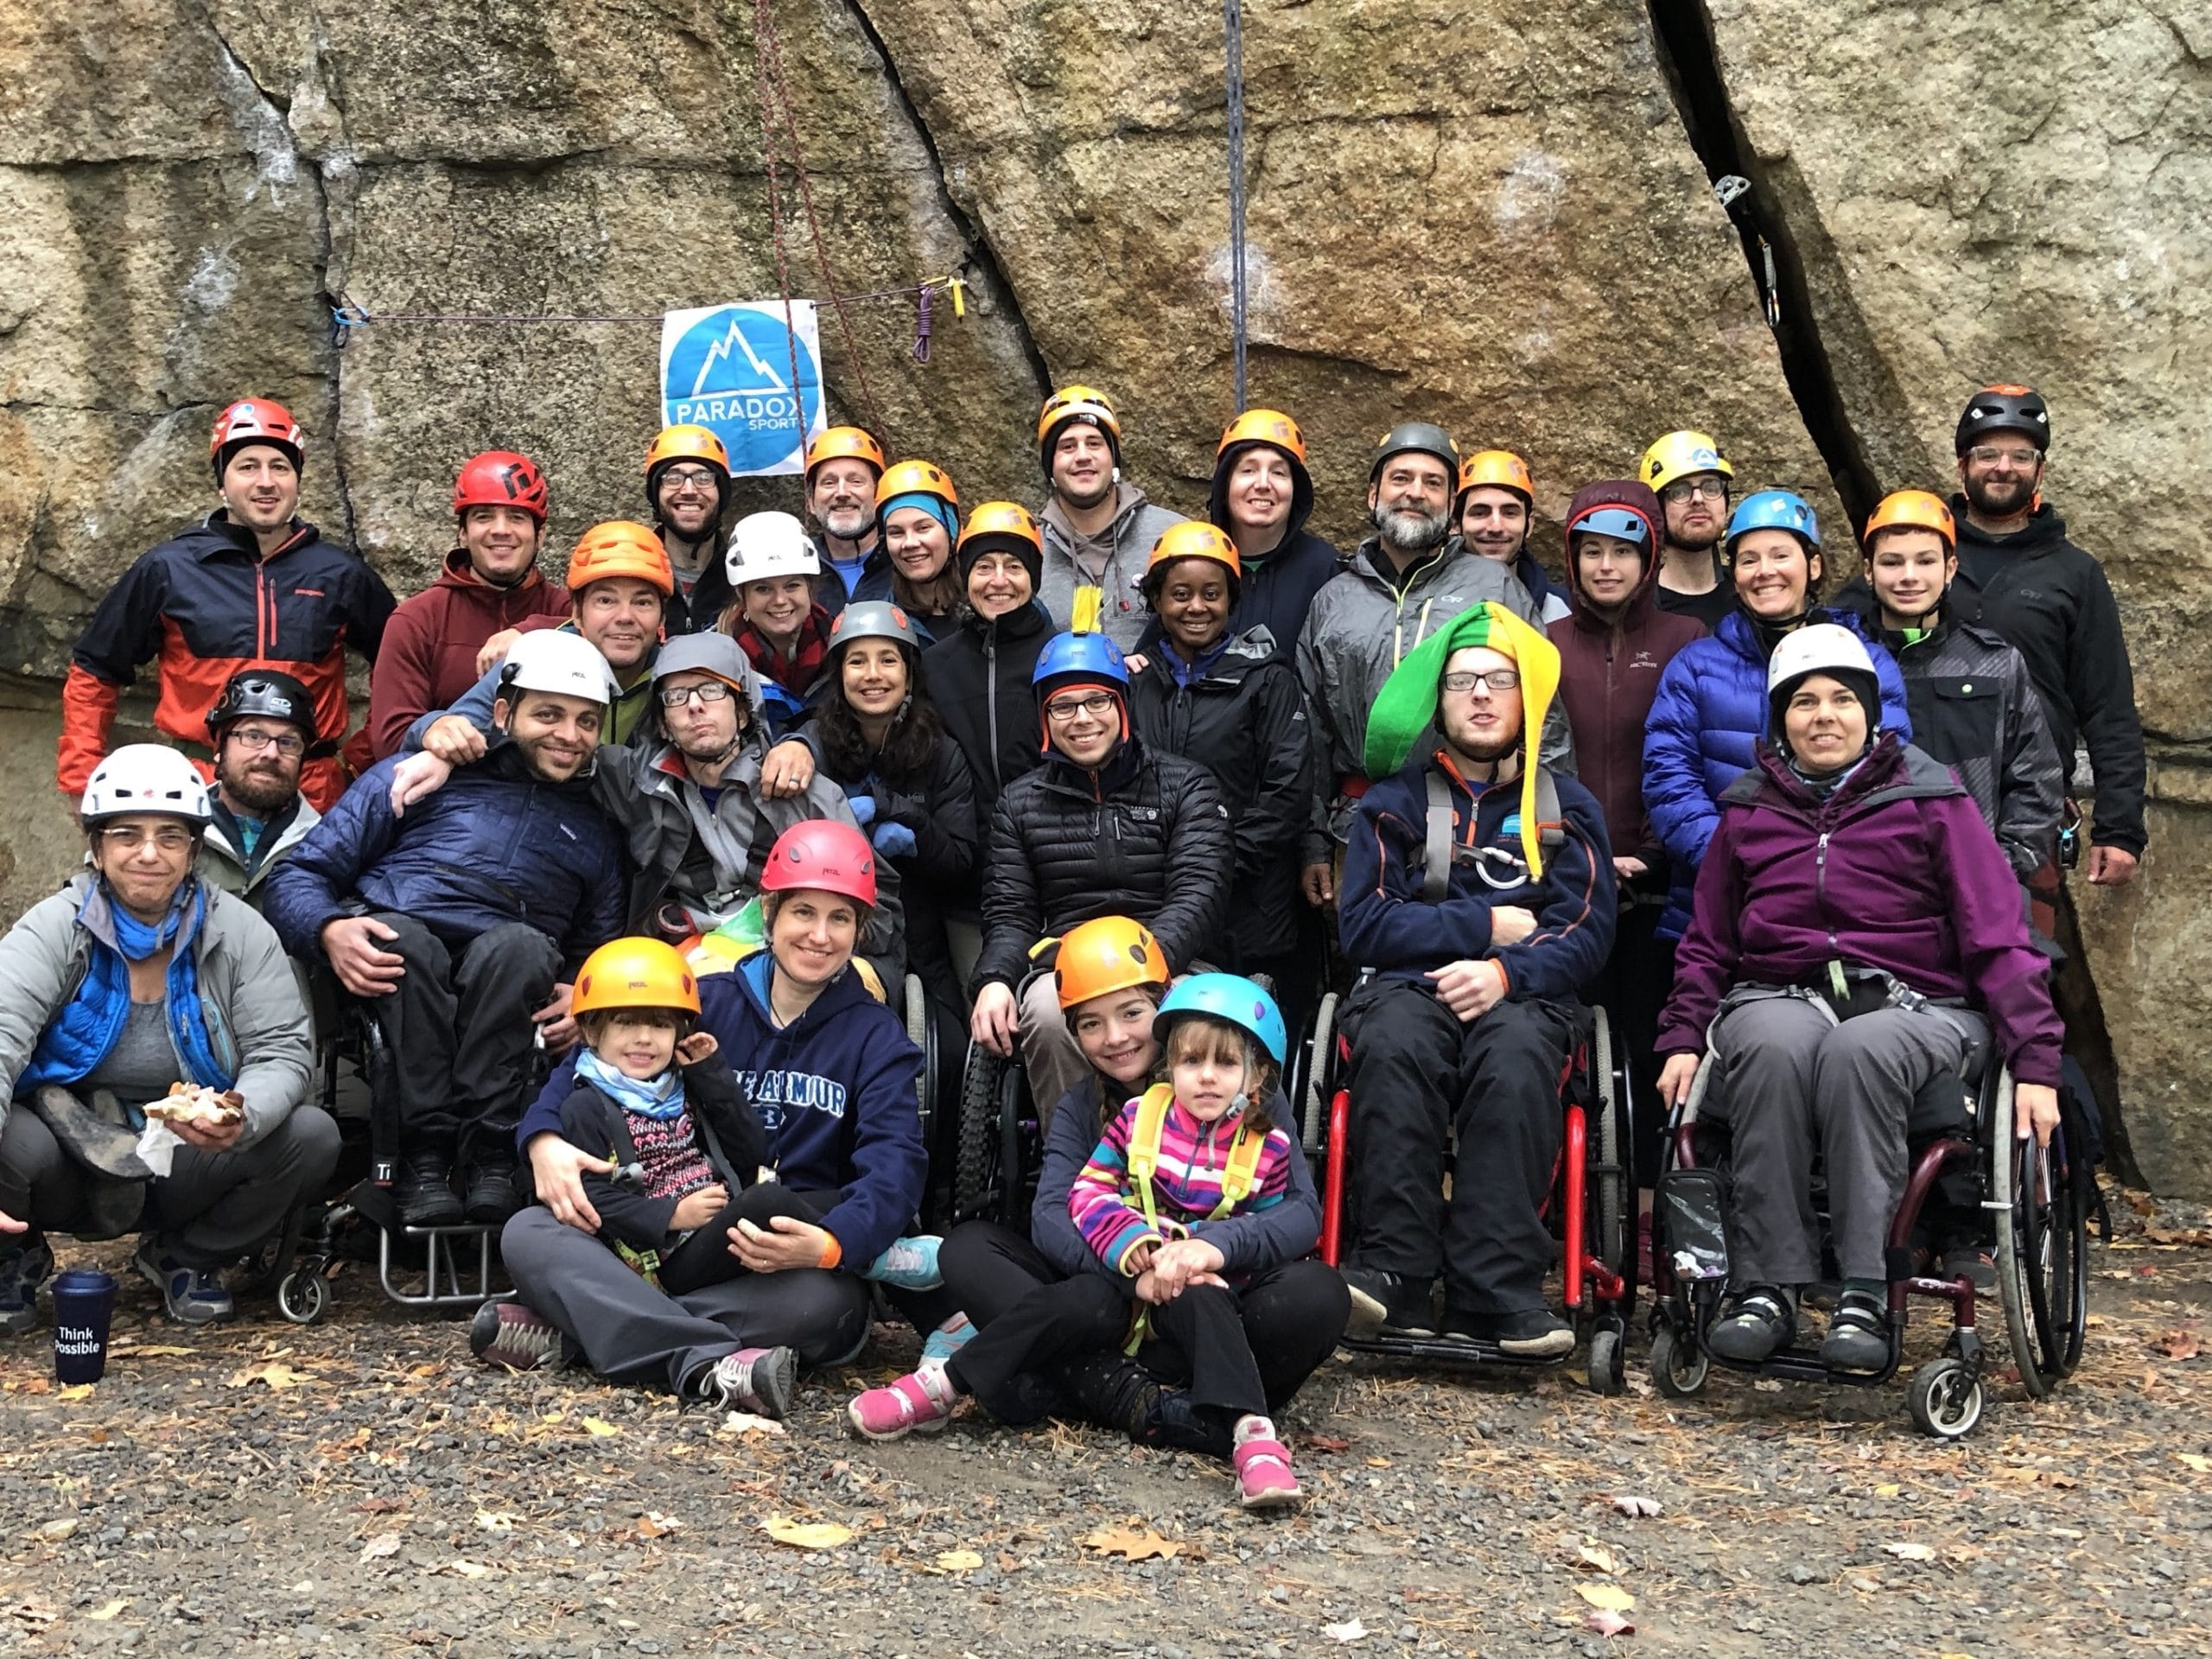 A group of climbers with and without disabilities wearing safety helmets in front of a cliff smiling at the camera.